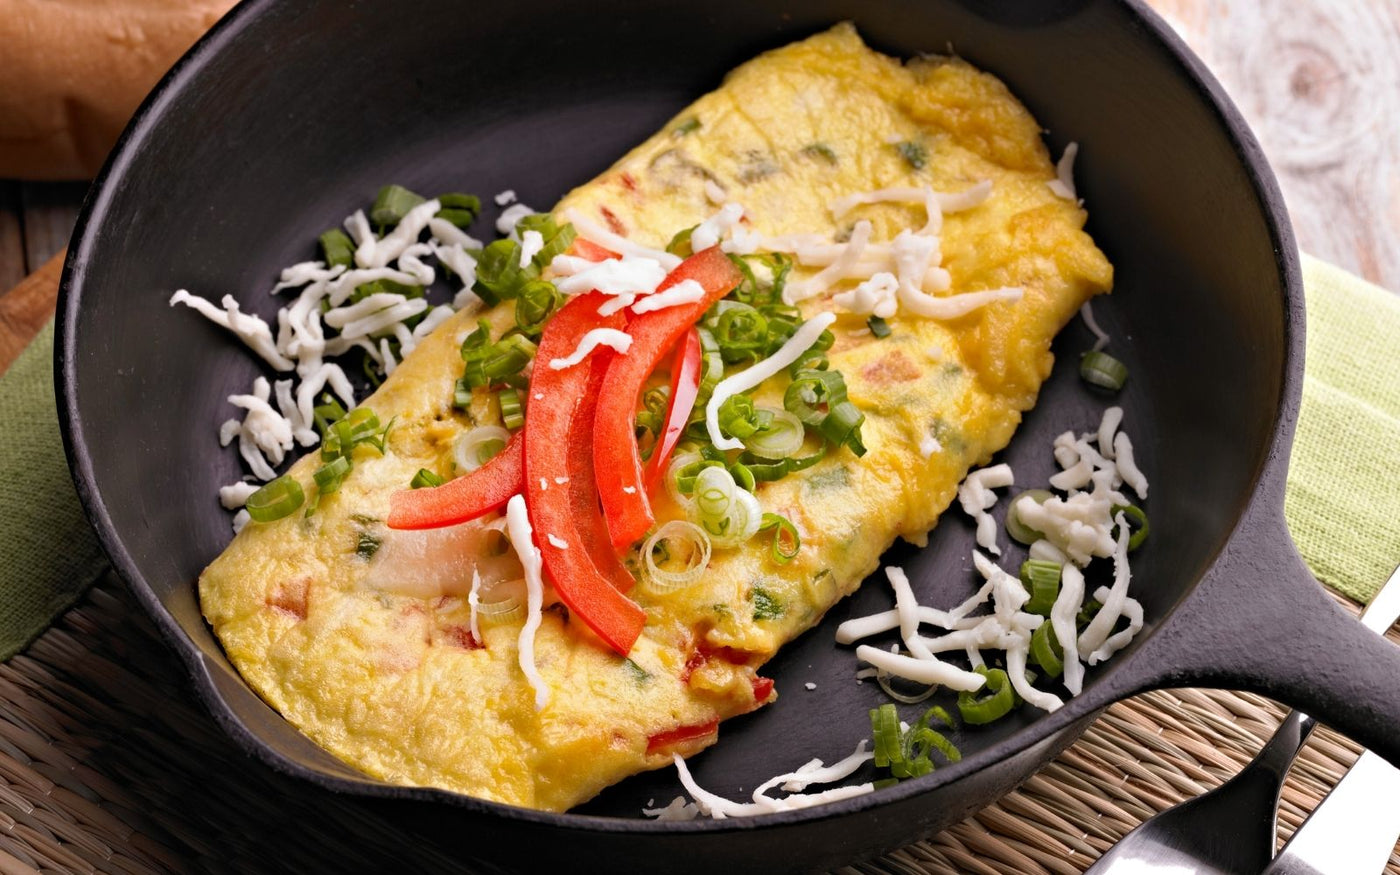 vegetarian keto diet: Stuffed egg omelette with vegetables on a plate